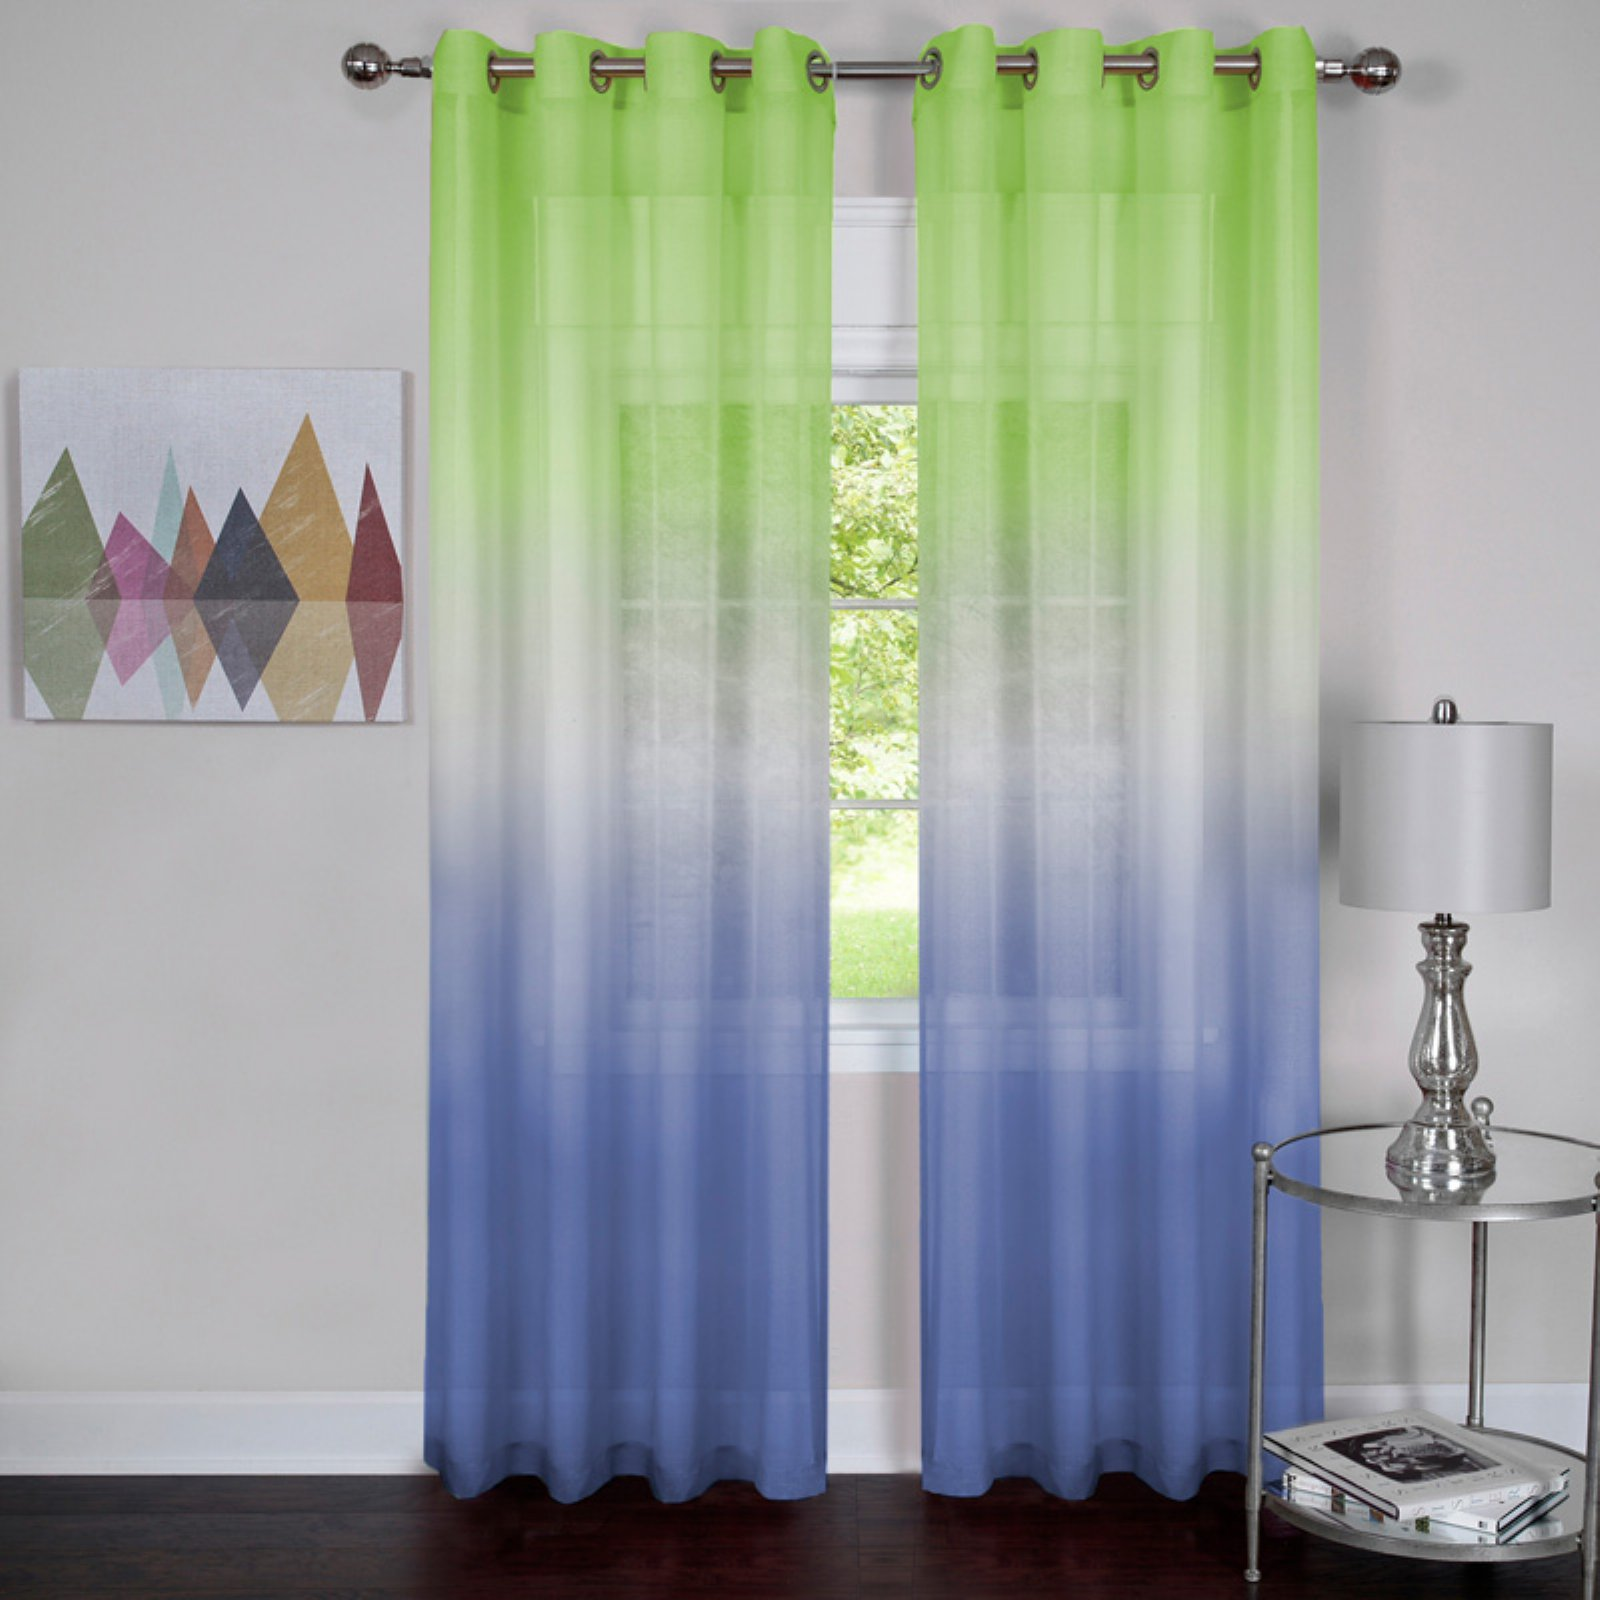 Rainbow Single Grommet Curtain Panel by Achim Importing Co. Inc